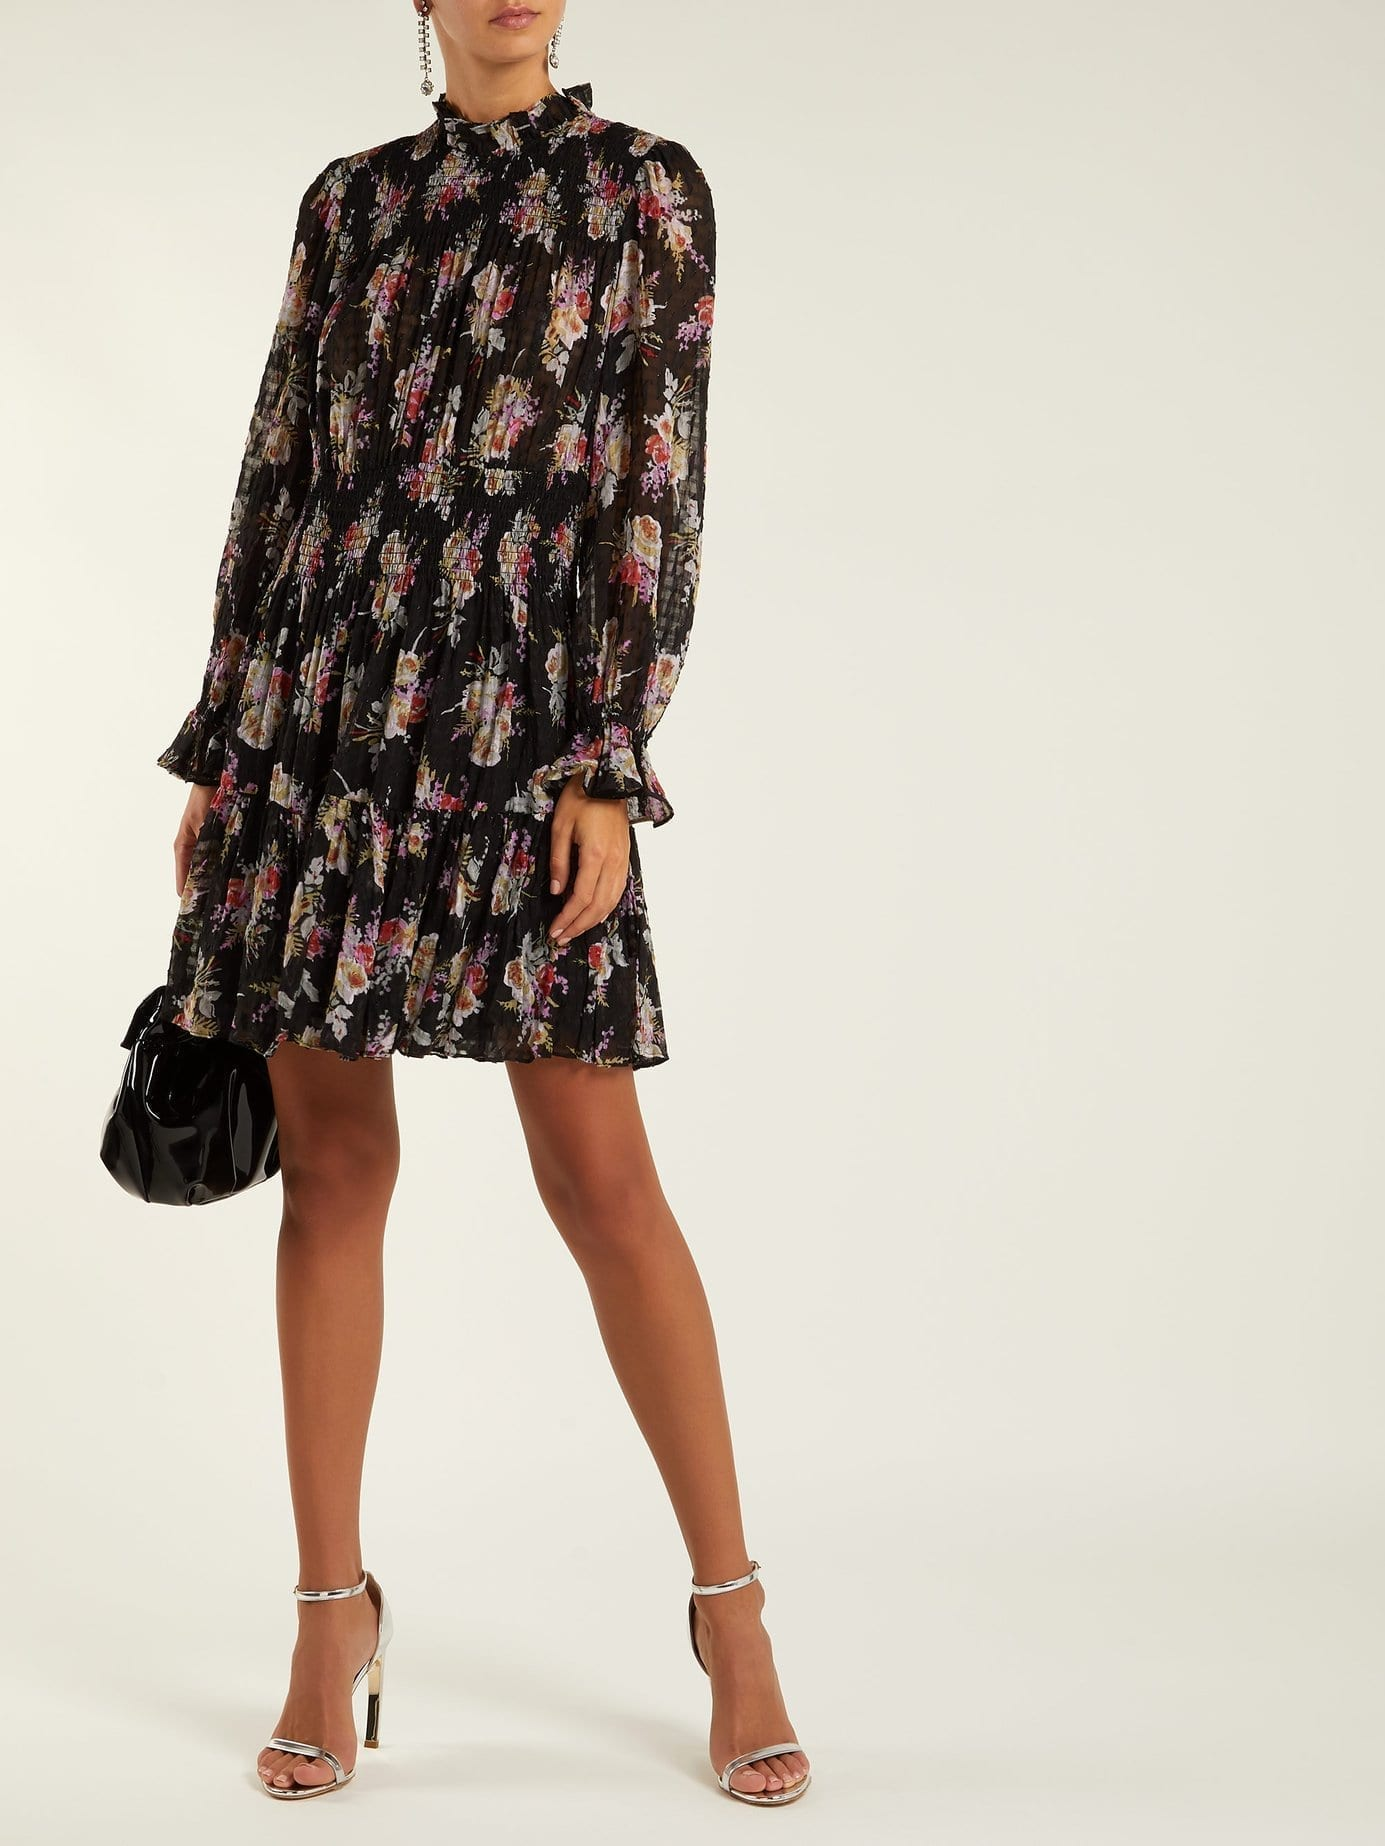 REBECCA TAYLOR Bouquet Silk Blend Mini Black / Floral Printed Dress